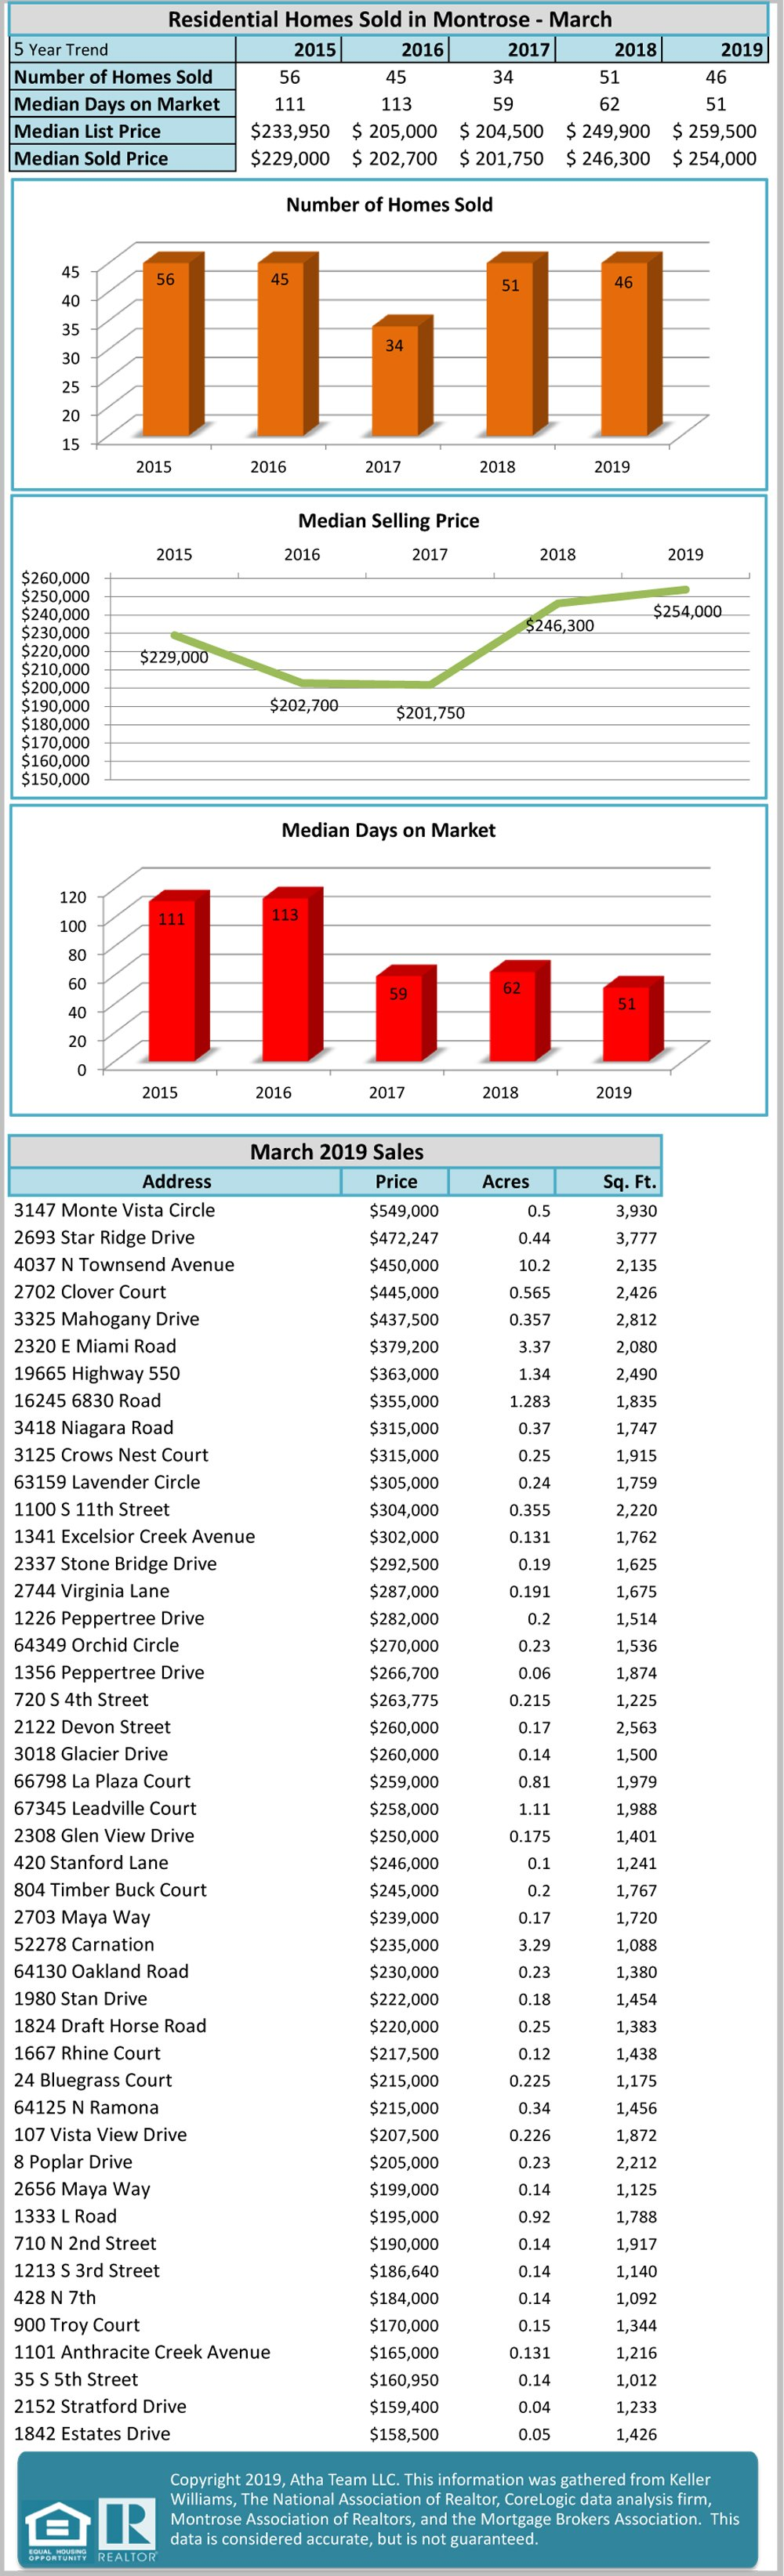 Residential Homes Sold in Montrose - March Real Estate Statistics